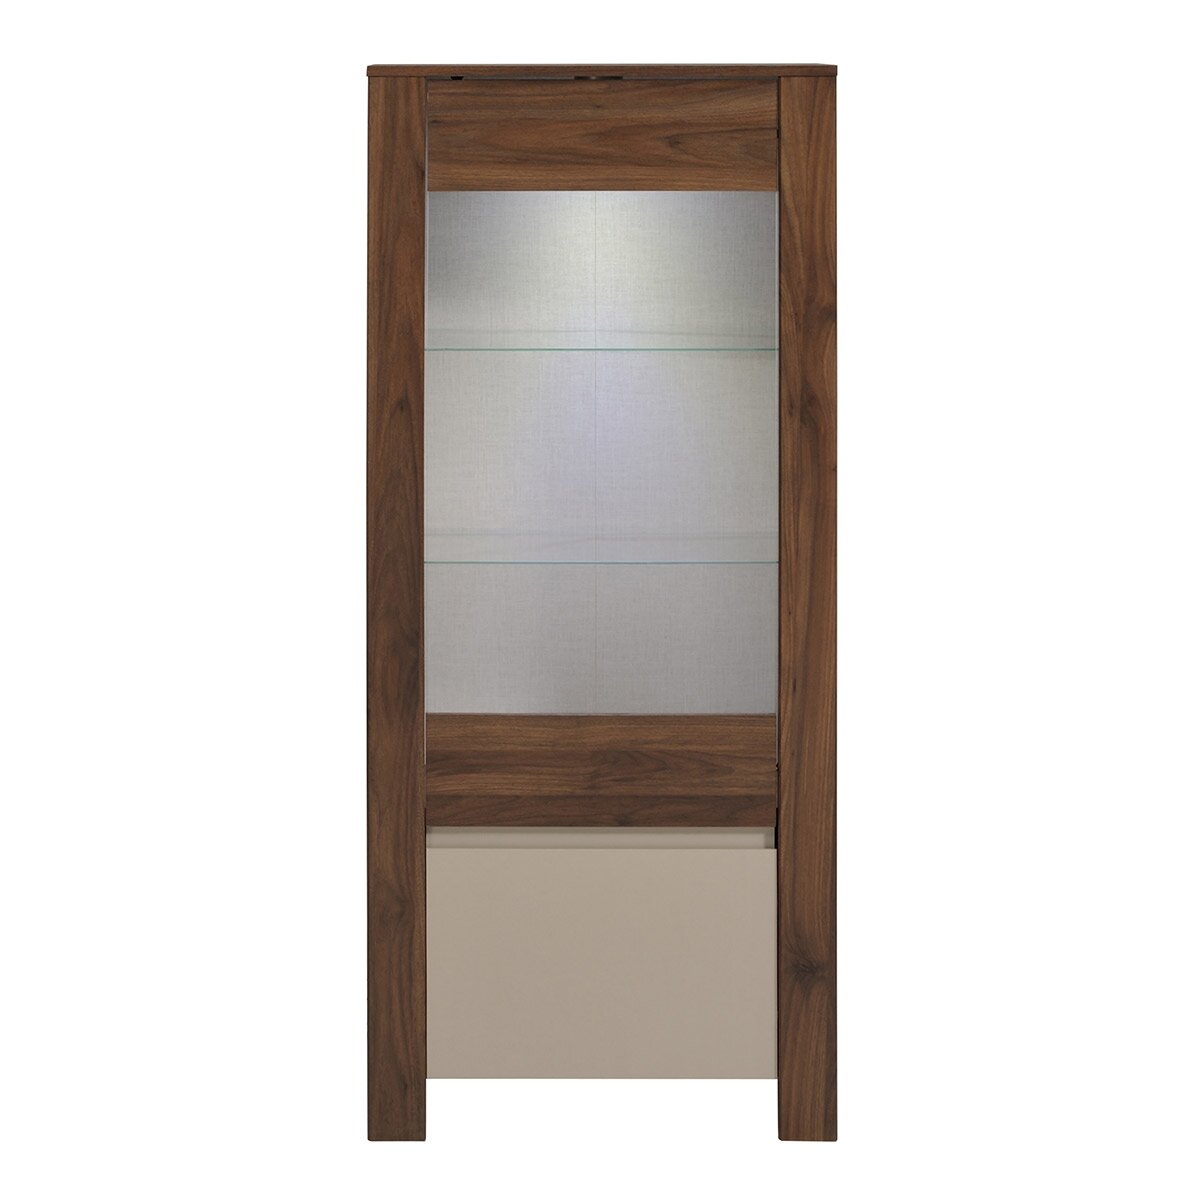 Wooden Storage Cabinets With Doors Parisot Tiago 60 H X 25 W X 157 D Glass Door Storage Cabinet